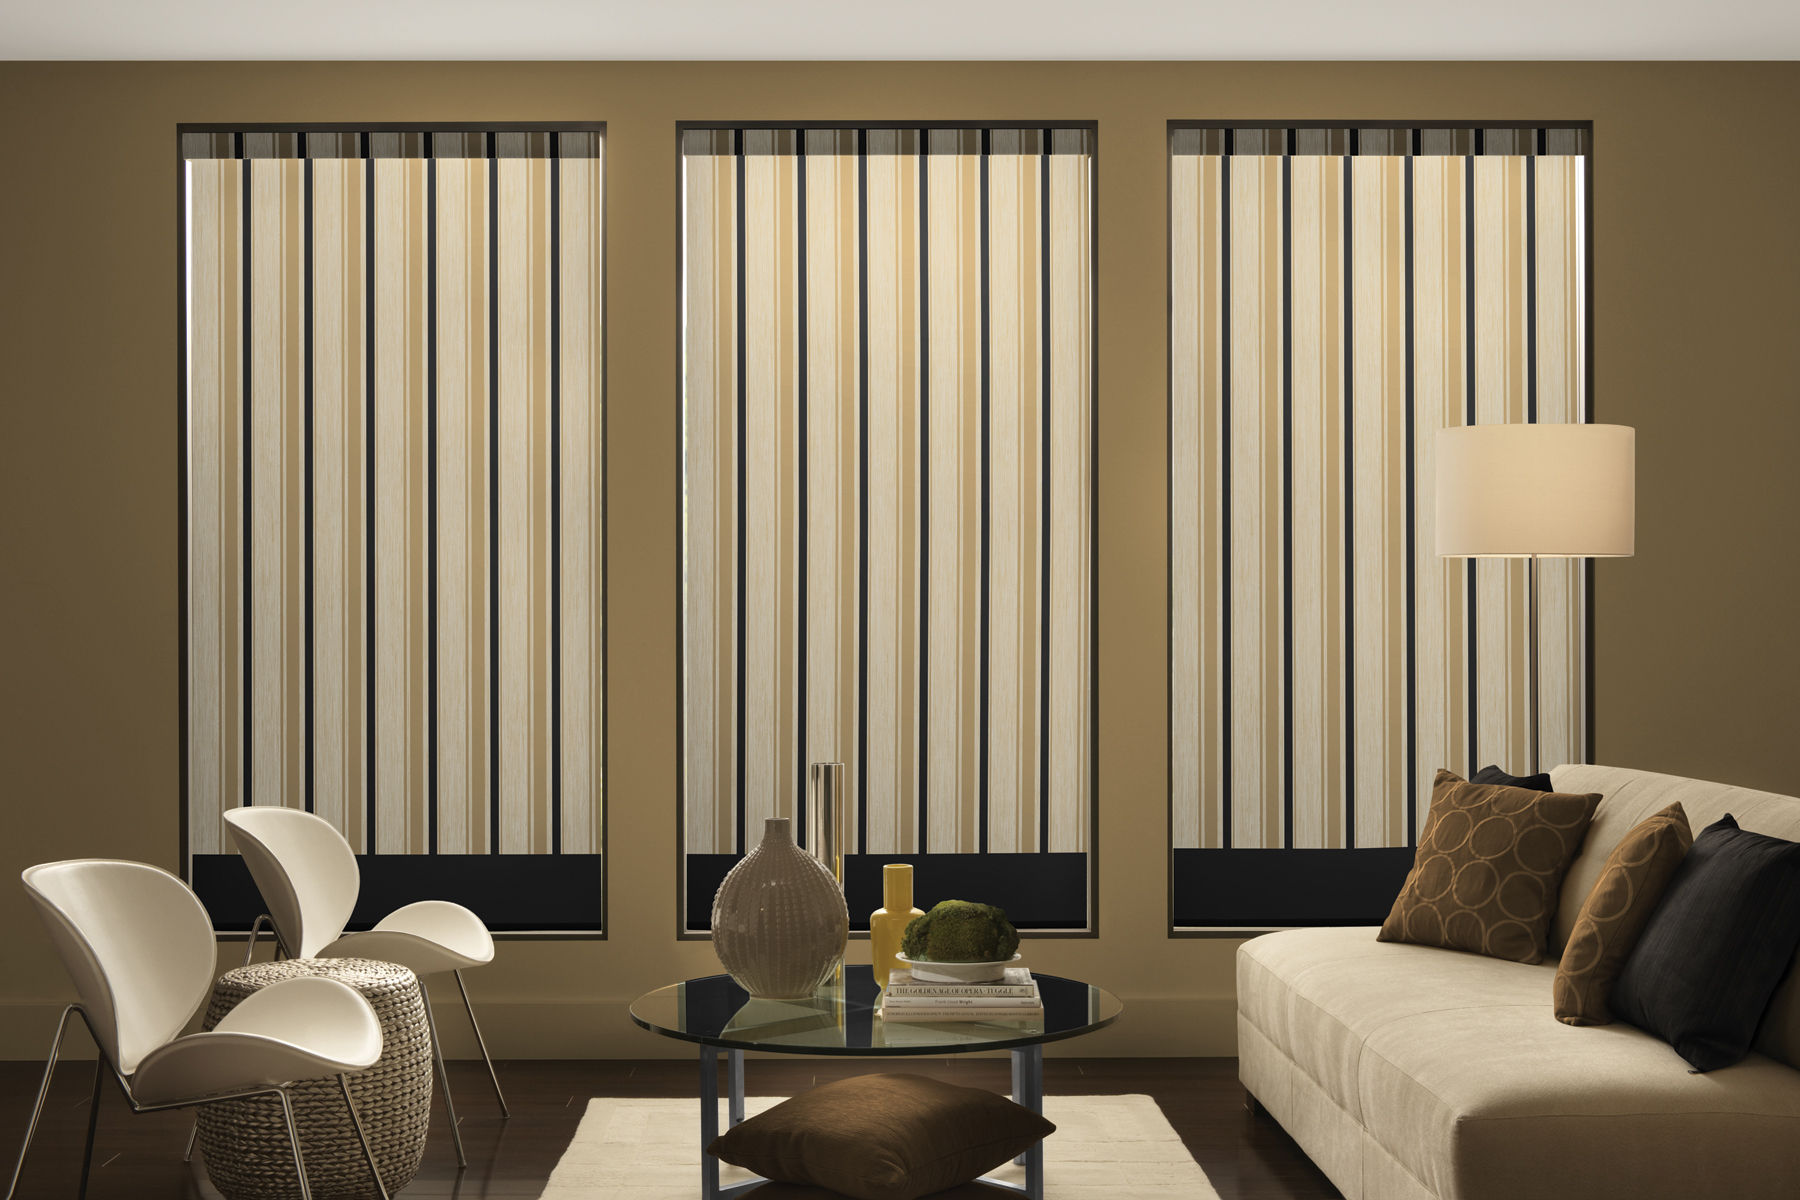 Few tips on curtains and blinds craven and hargreaves for Modern curtains and blinds